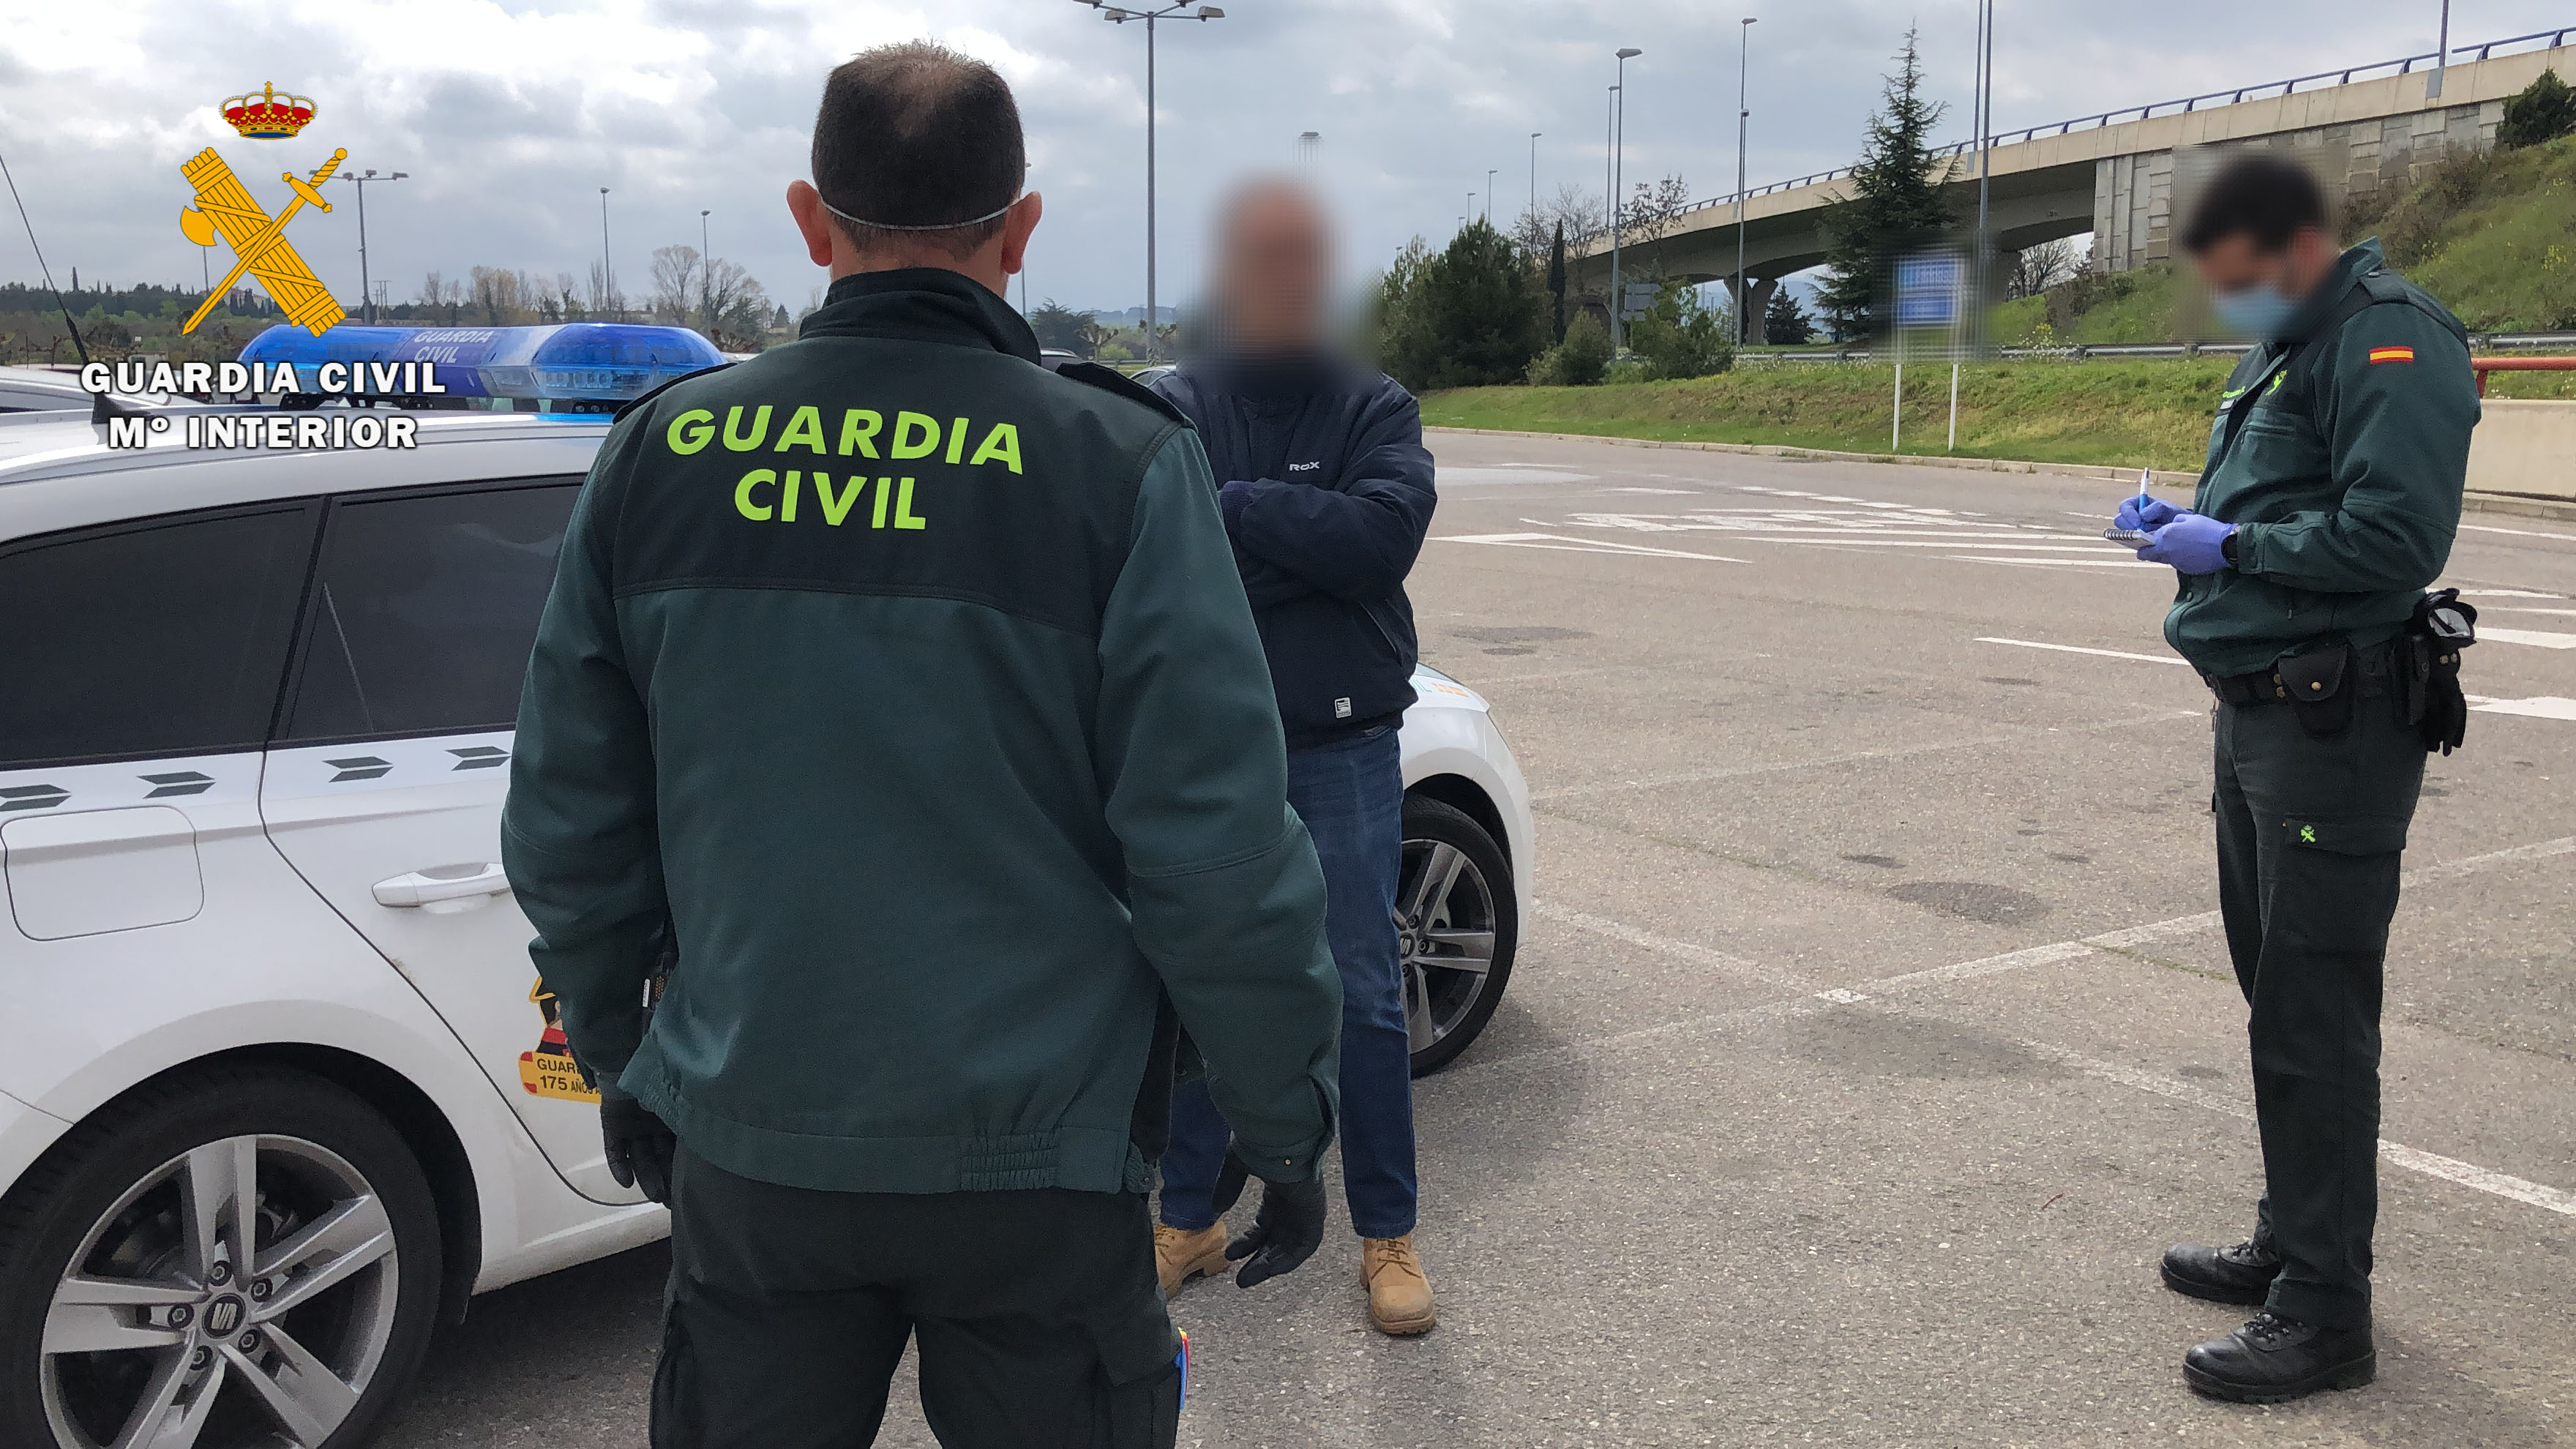 Supermercado La Rioja. FOTO: GUARDIA CIVIL